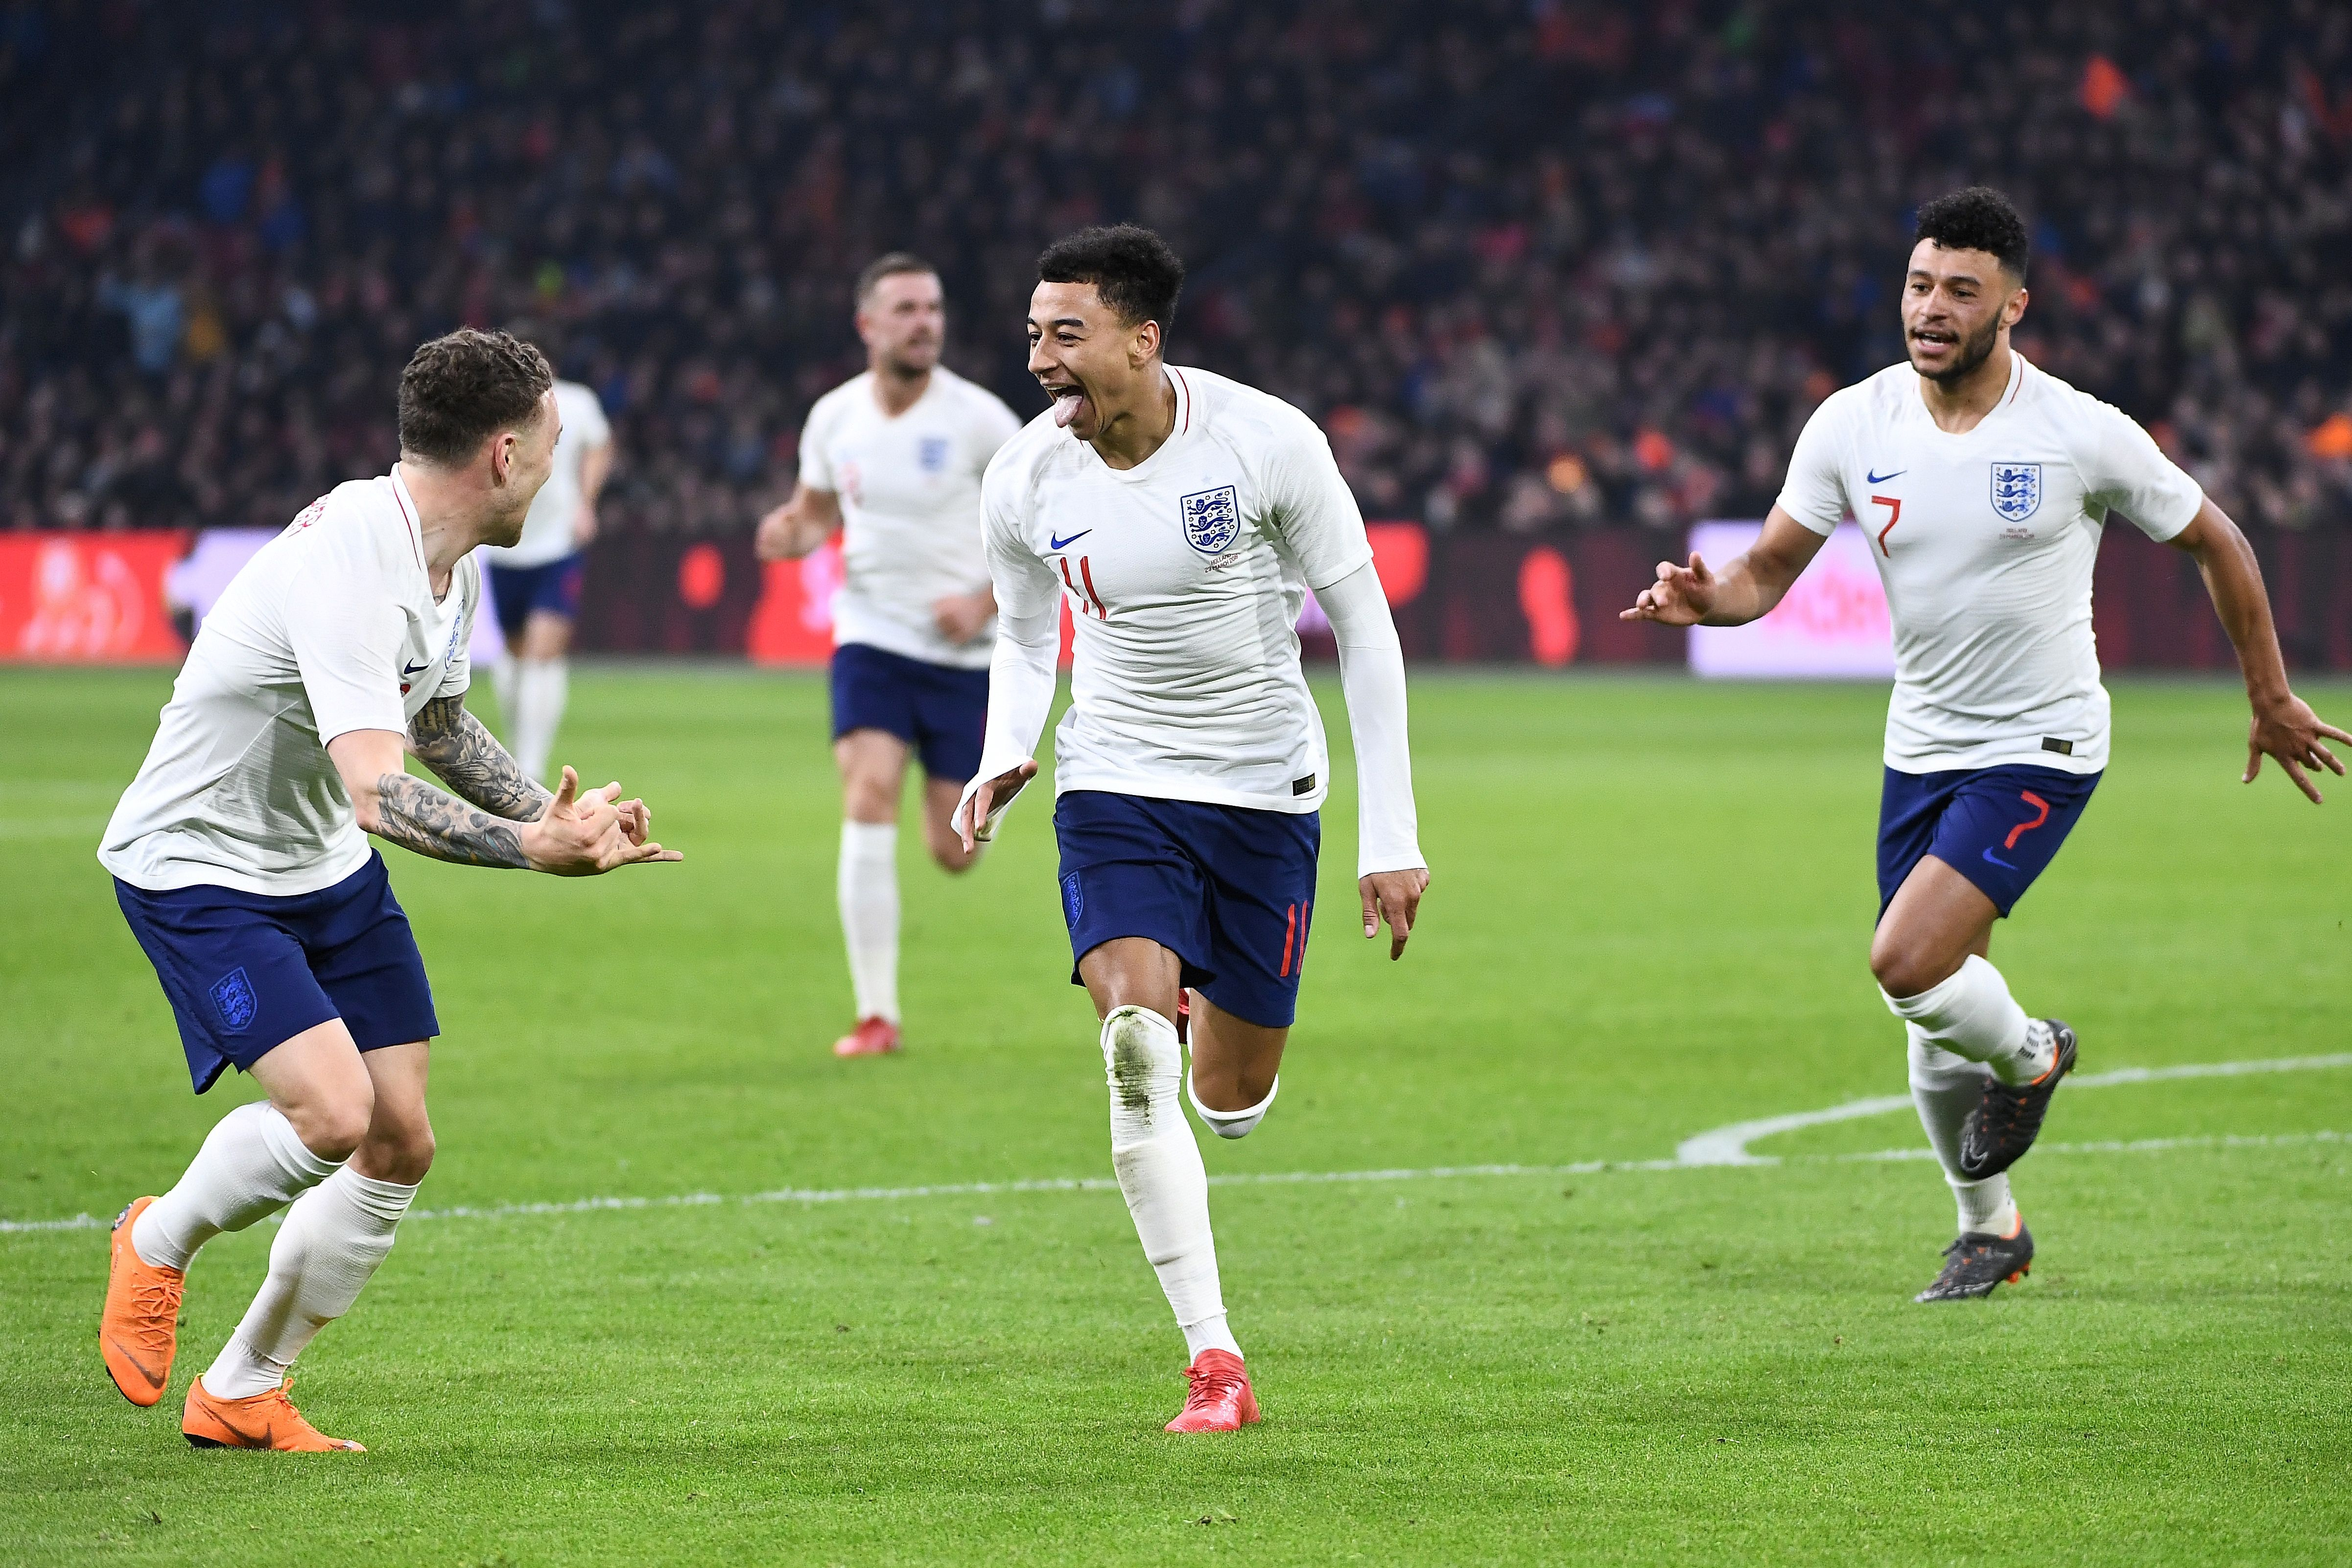 EMBED ONLY Jesse Lingard England